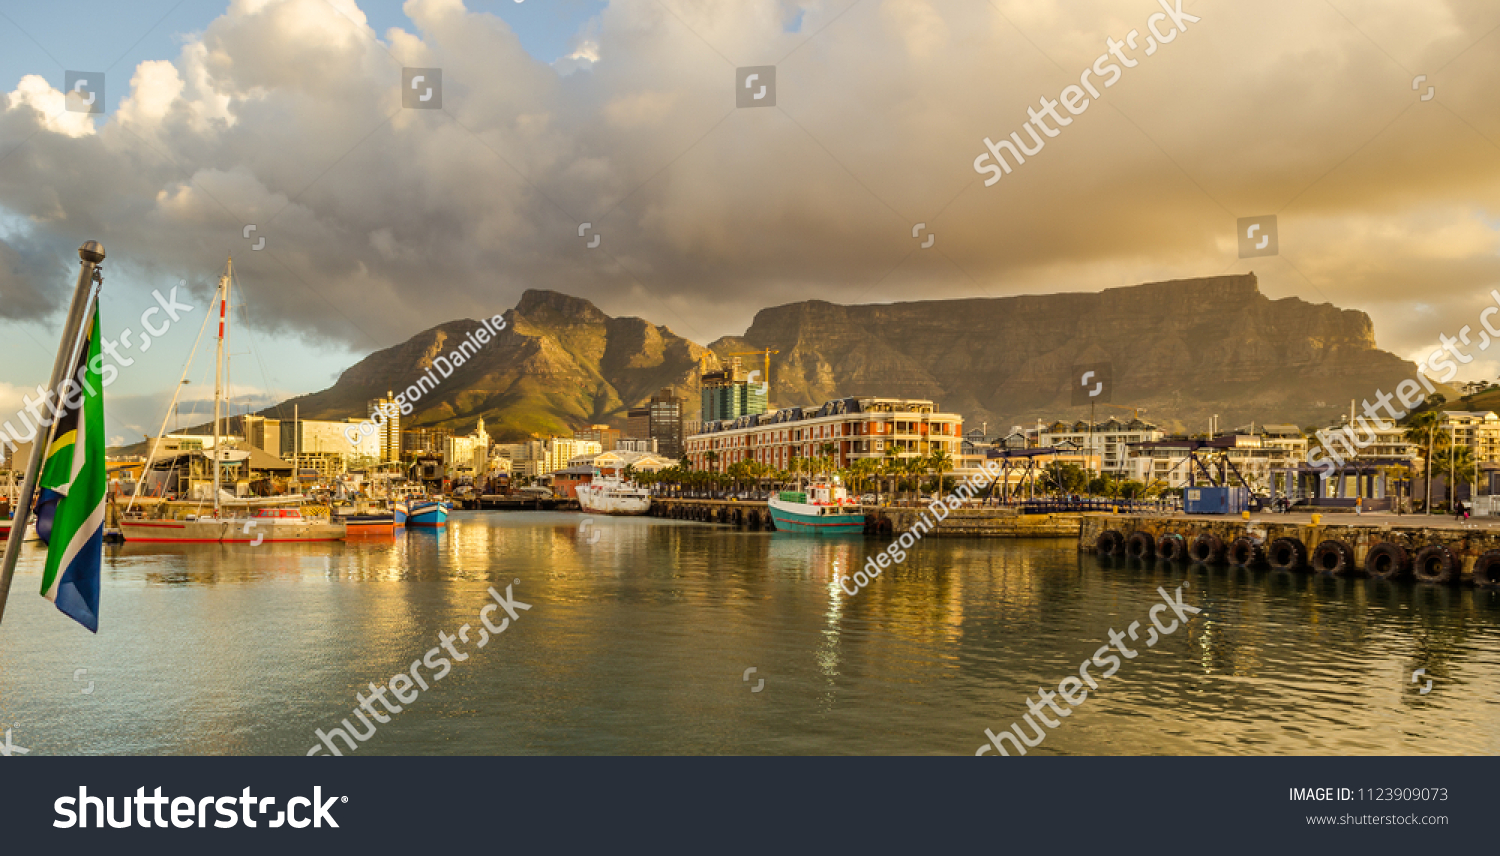 Cape Town harbor, Victoria and Alfred Waterfront at sunset with south african flag. Table mountain in background, South Africa beautiful destination